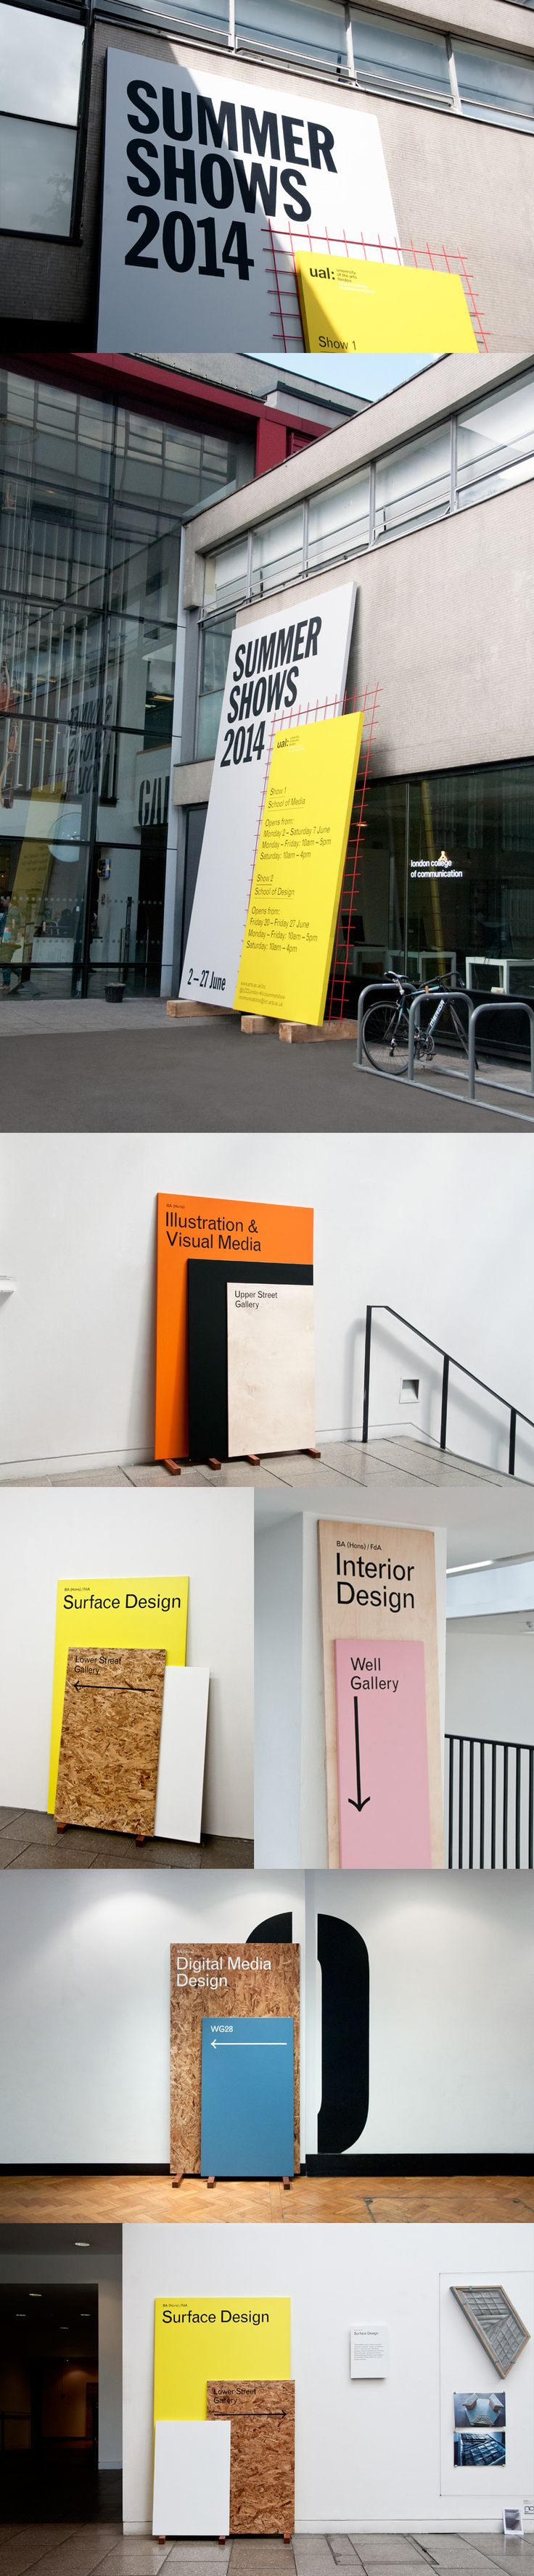 Branding and exhibition design for the Summer Shows 2014, at the London College…